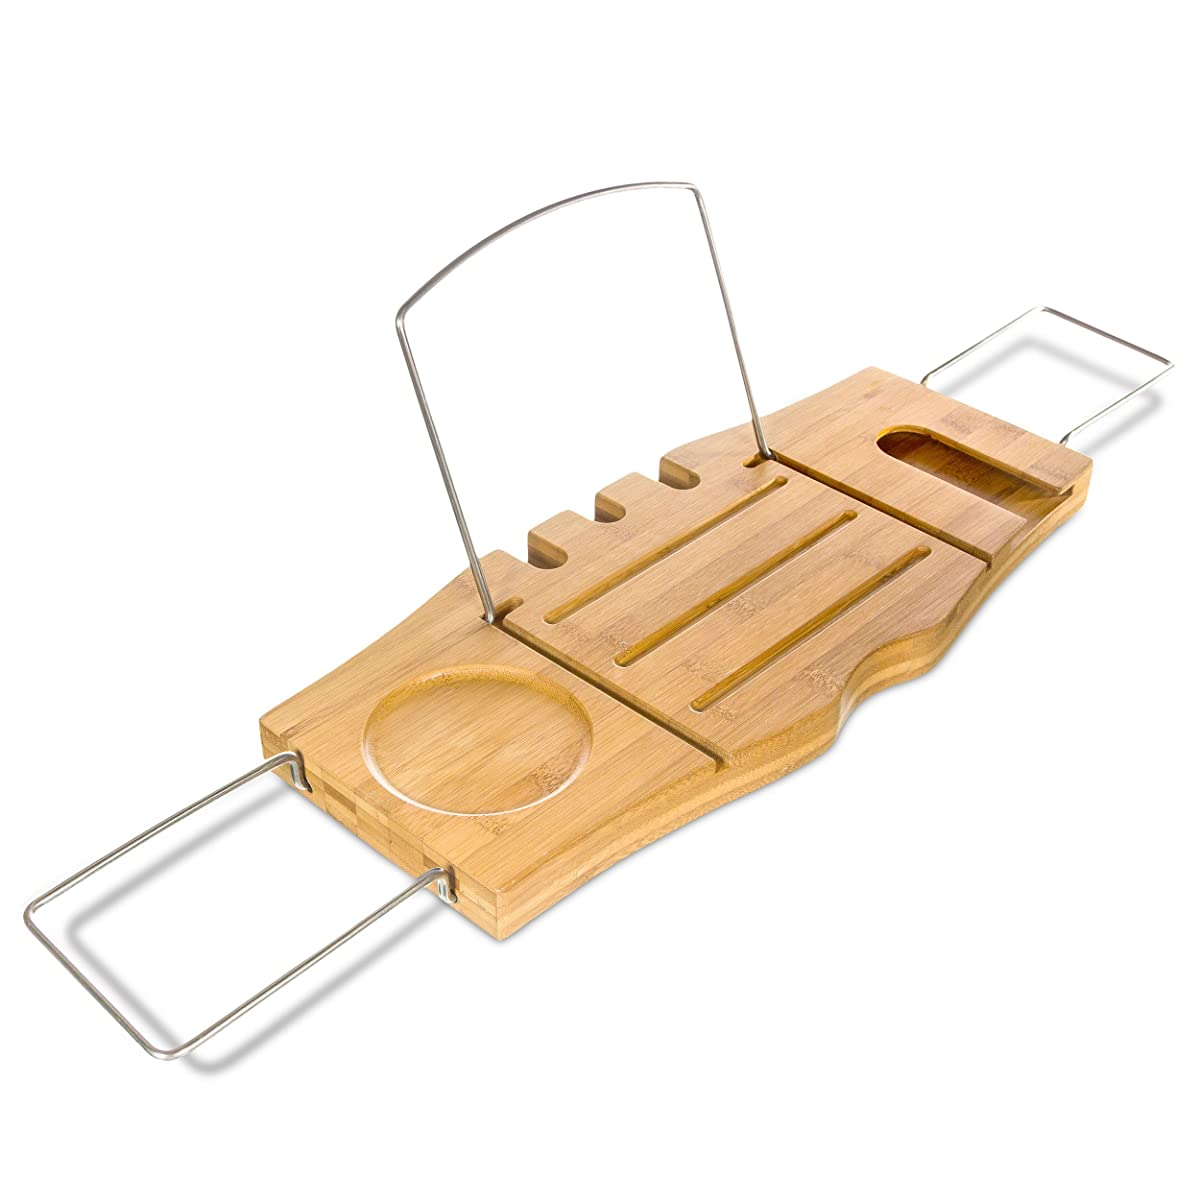 Clean Healthy Living Bamboo Bathtub Caddy Tray, with Reading Tray & Wine Glass Holder